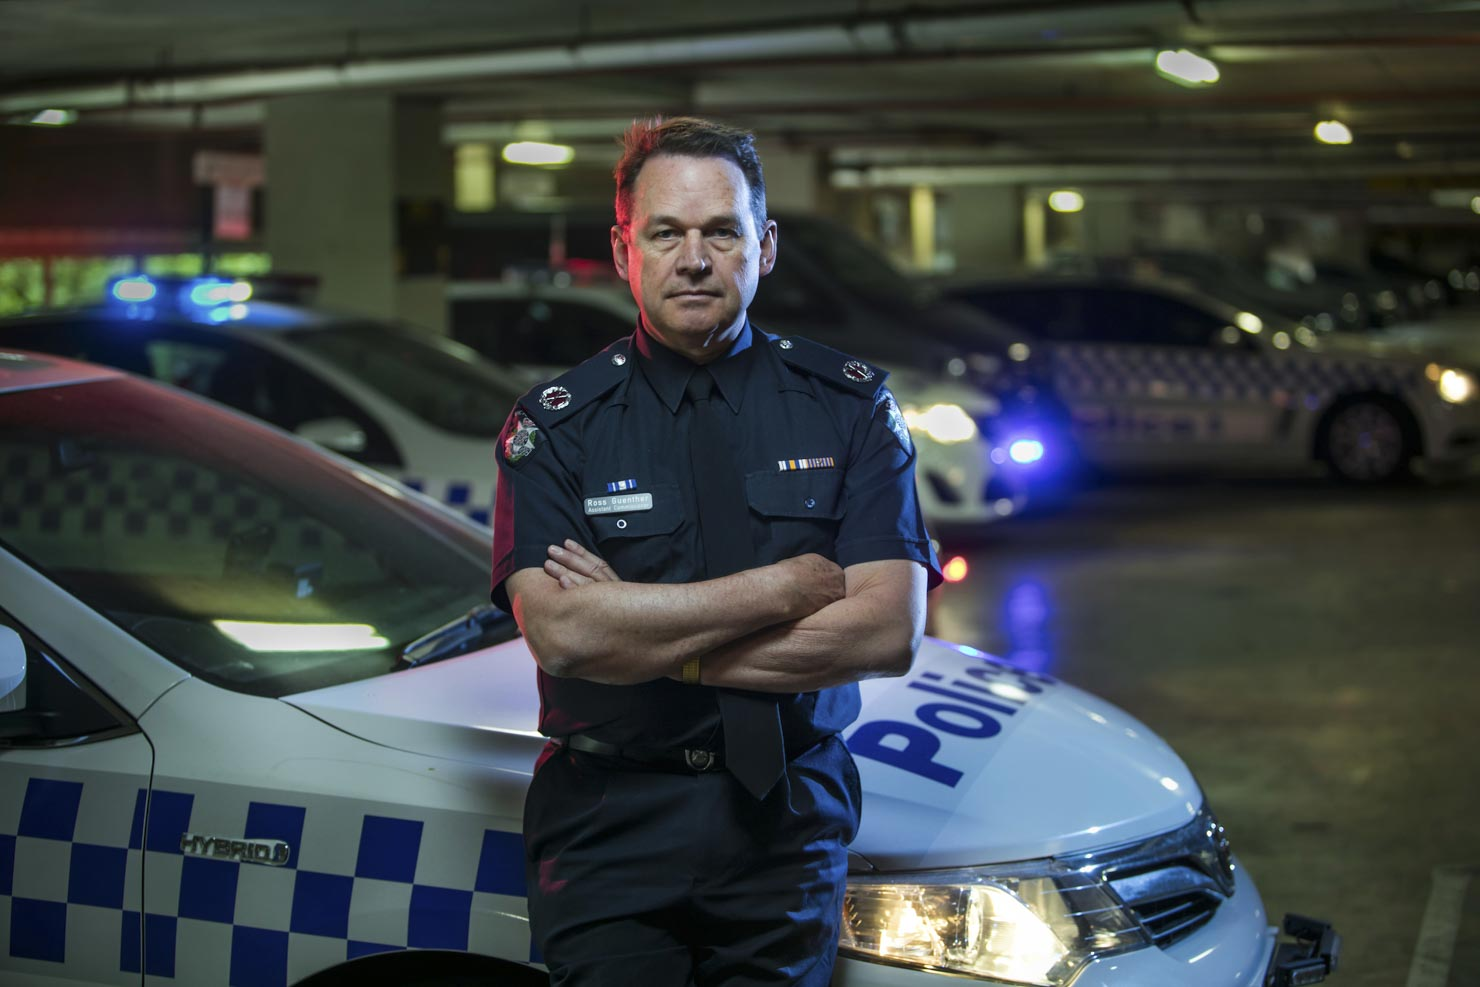 Victoria Police officer with police cars